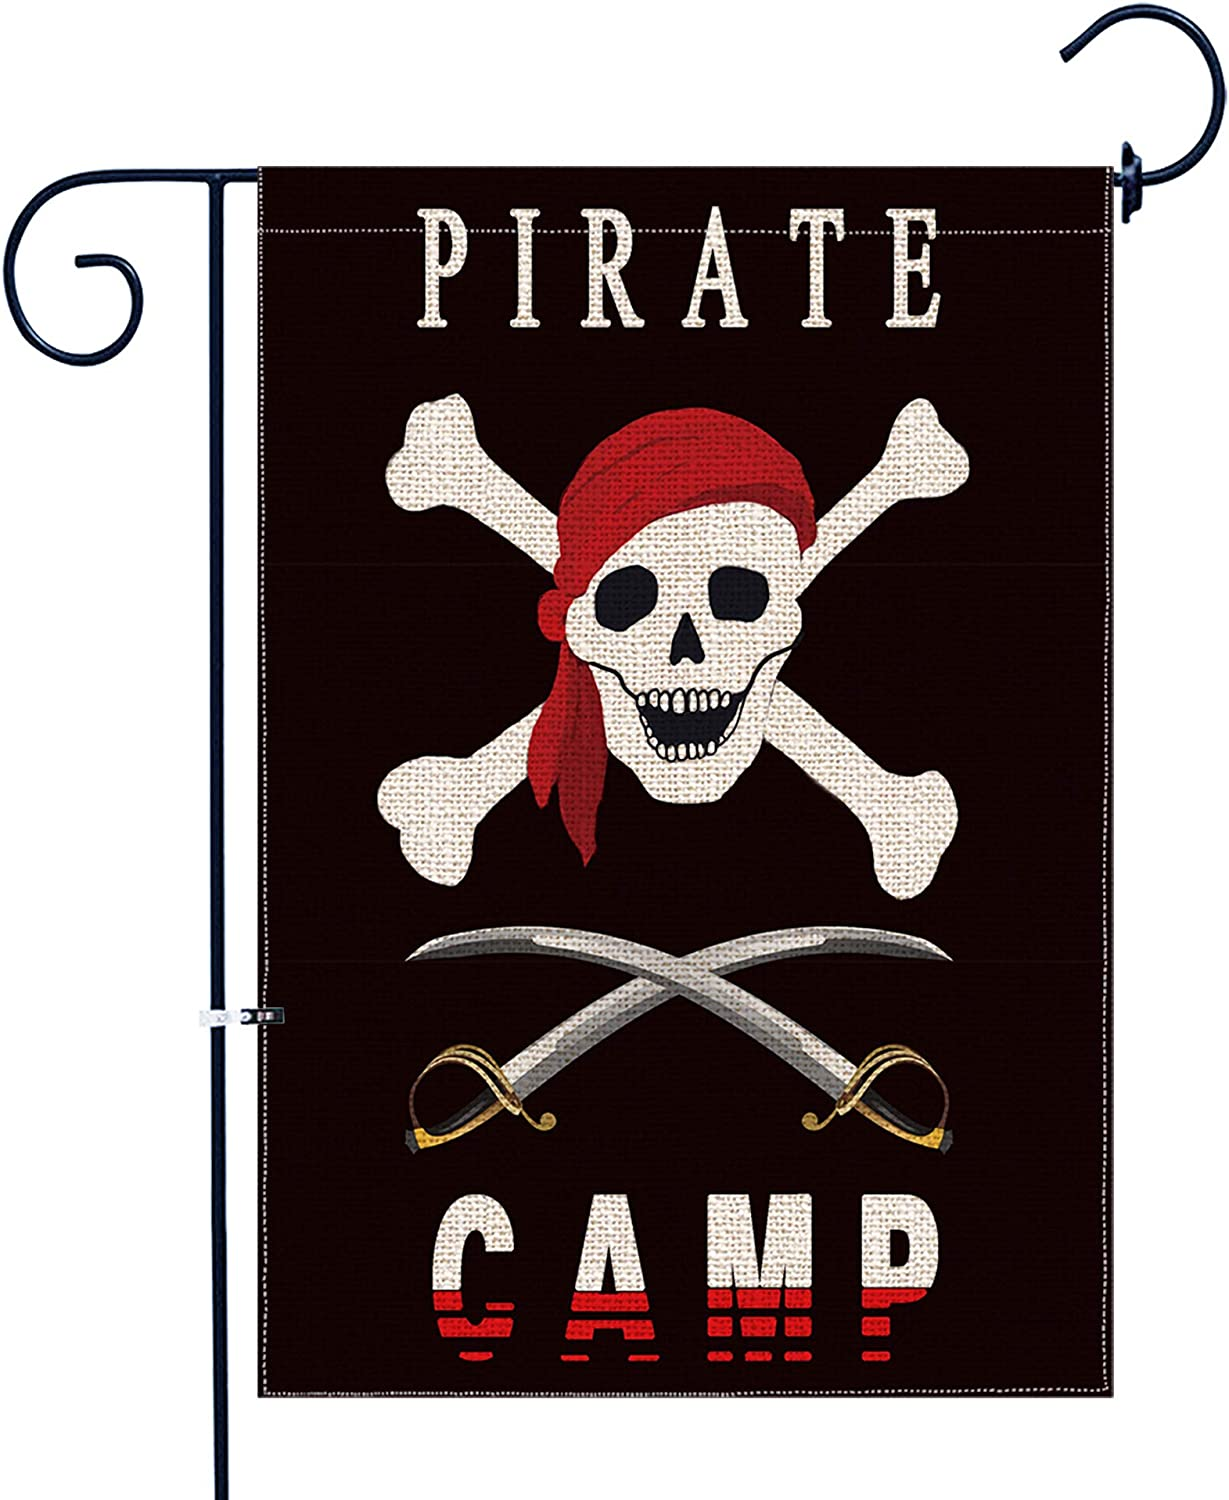 Bonsai Tree Burlap Pirate Spring Garden Flags 12x18 Prime Double-Sided Seasonal Yard Outdoor Decorative Flag Banner Stopper & Anti-Wind Clip